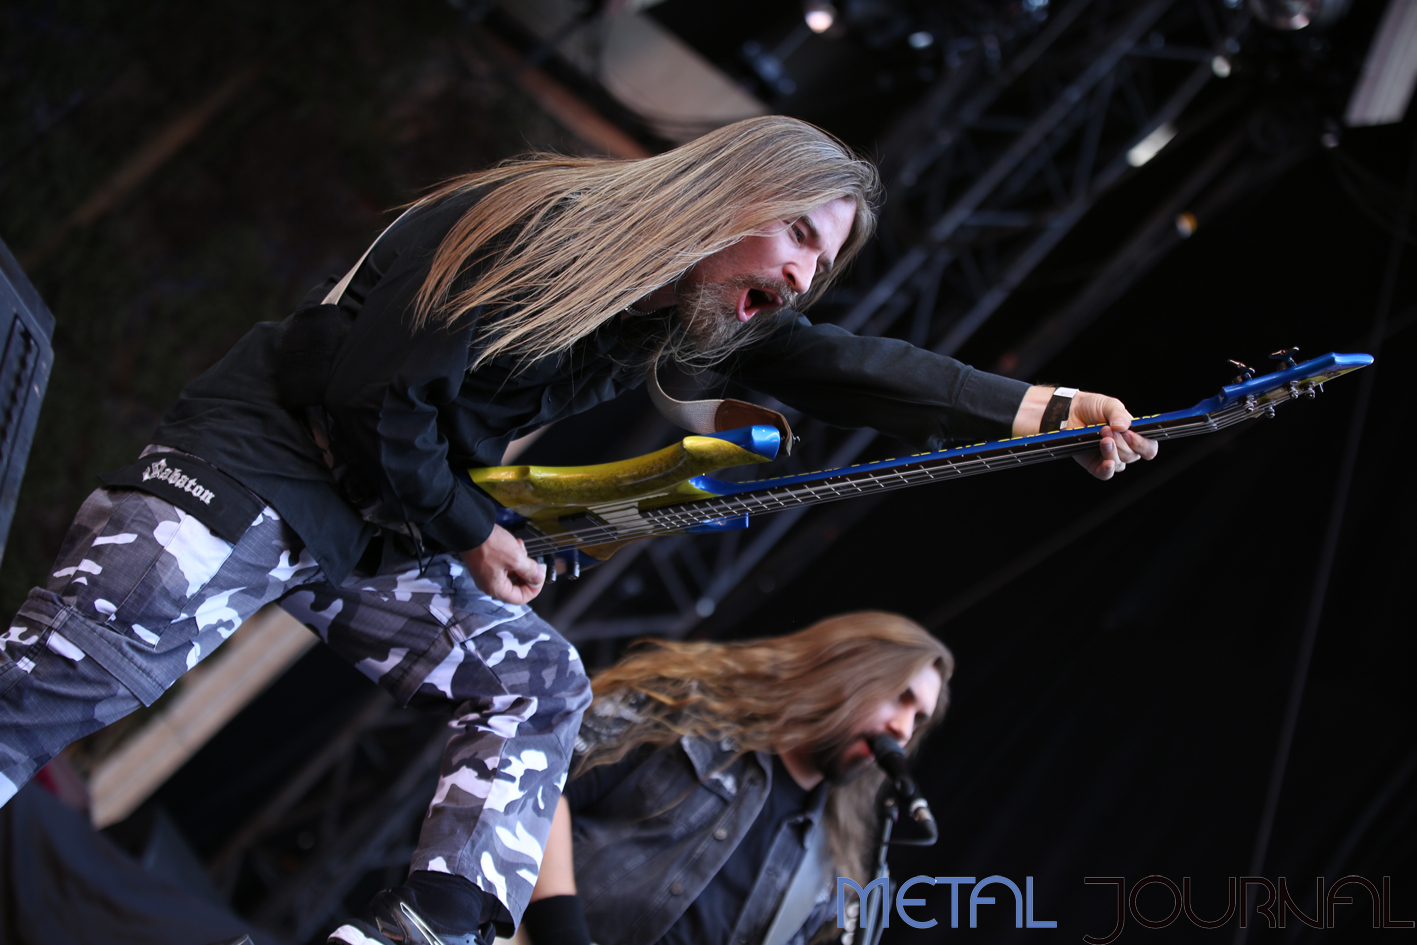 sabaton - wanda metropolitano metal journal 2018 pic 6